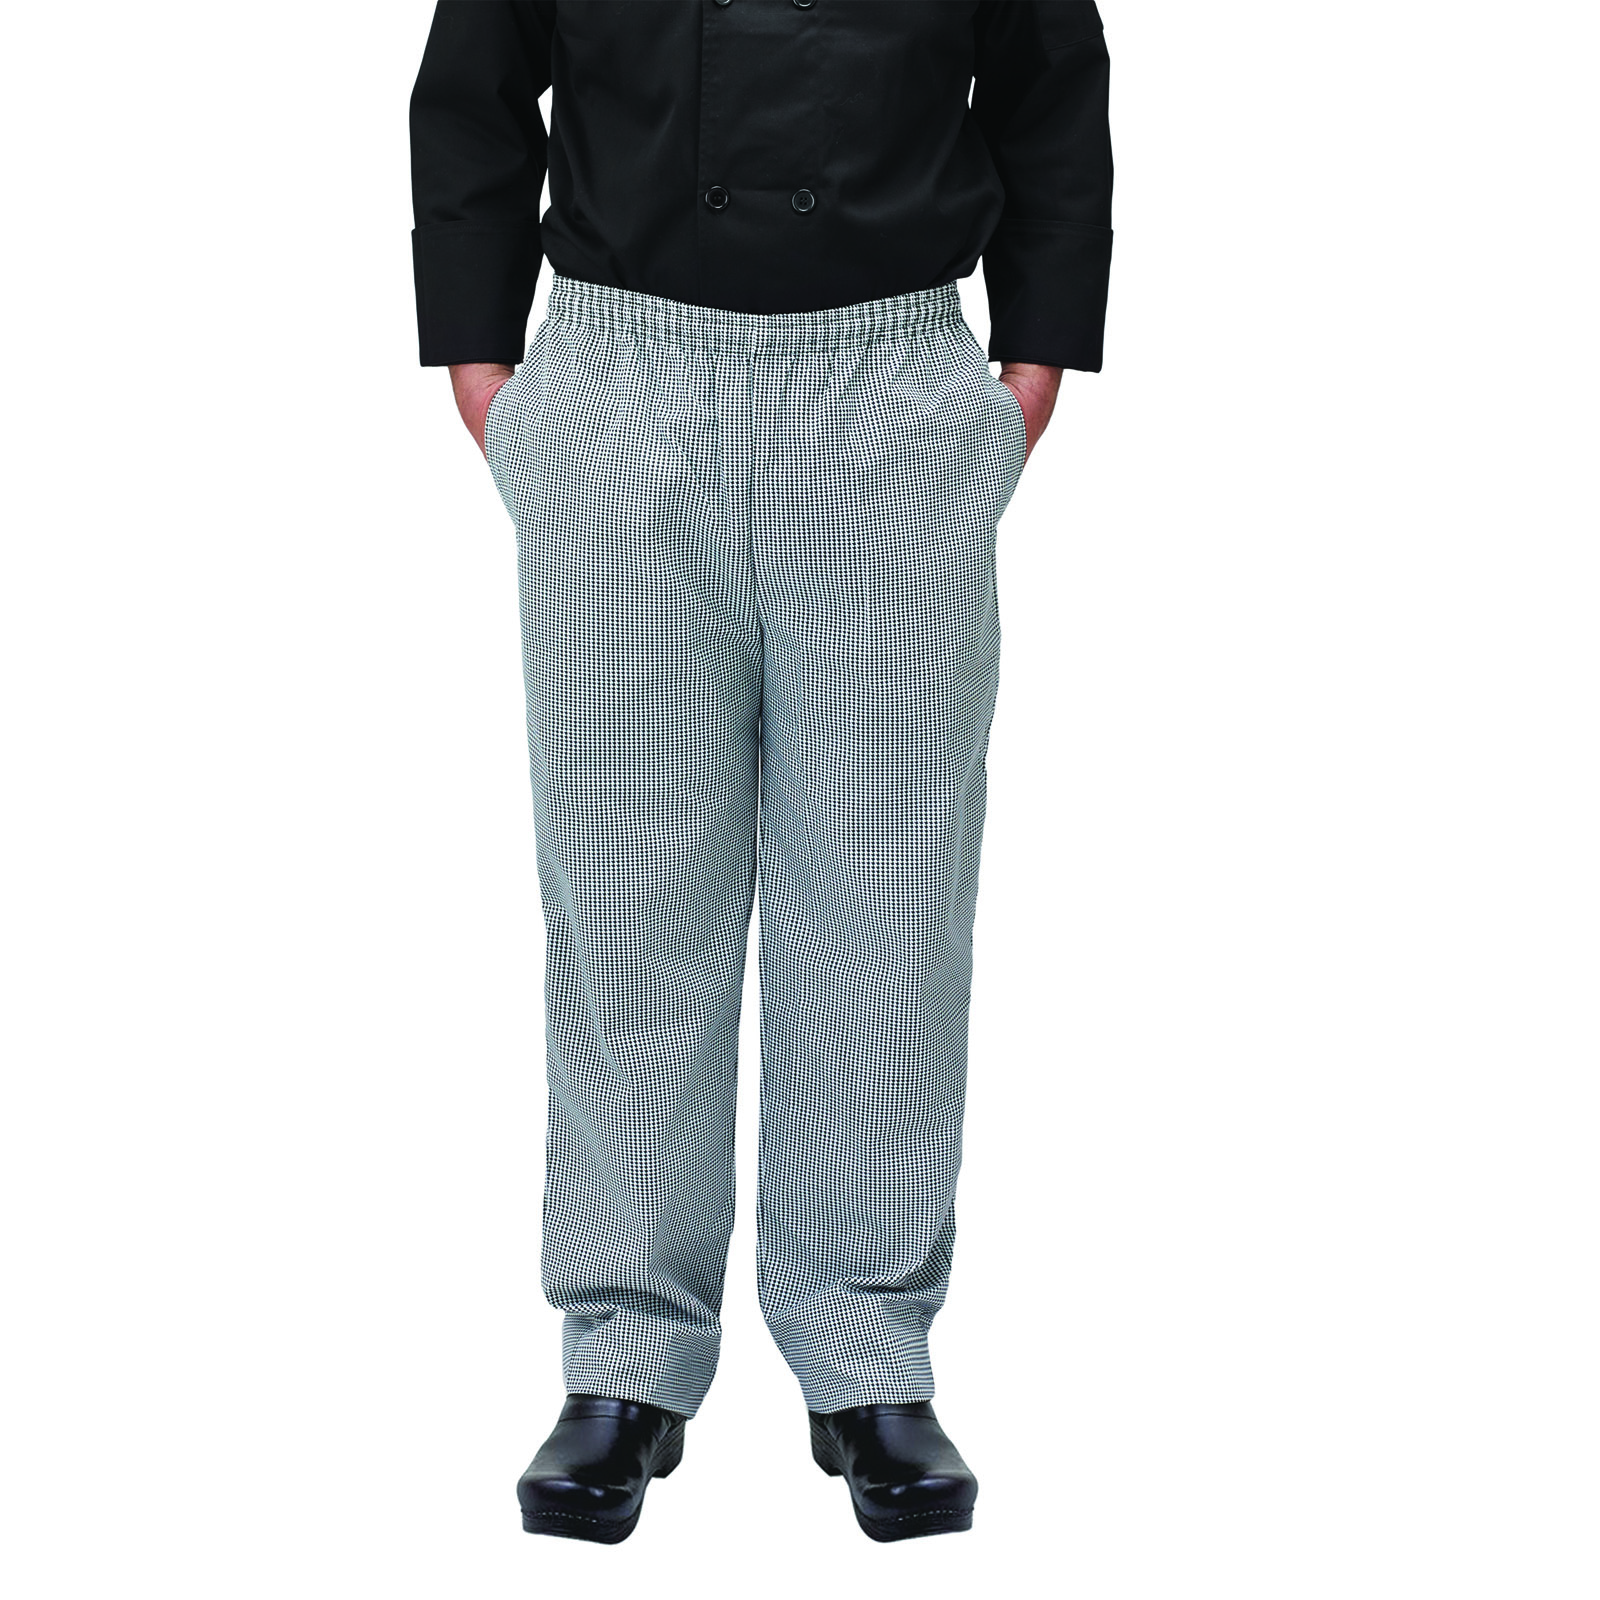 Winco UNF-4KL chef's pants